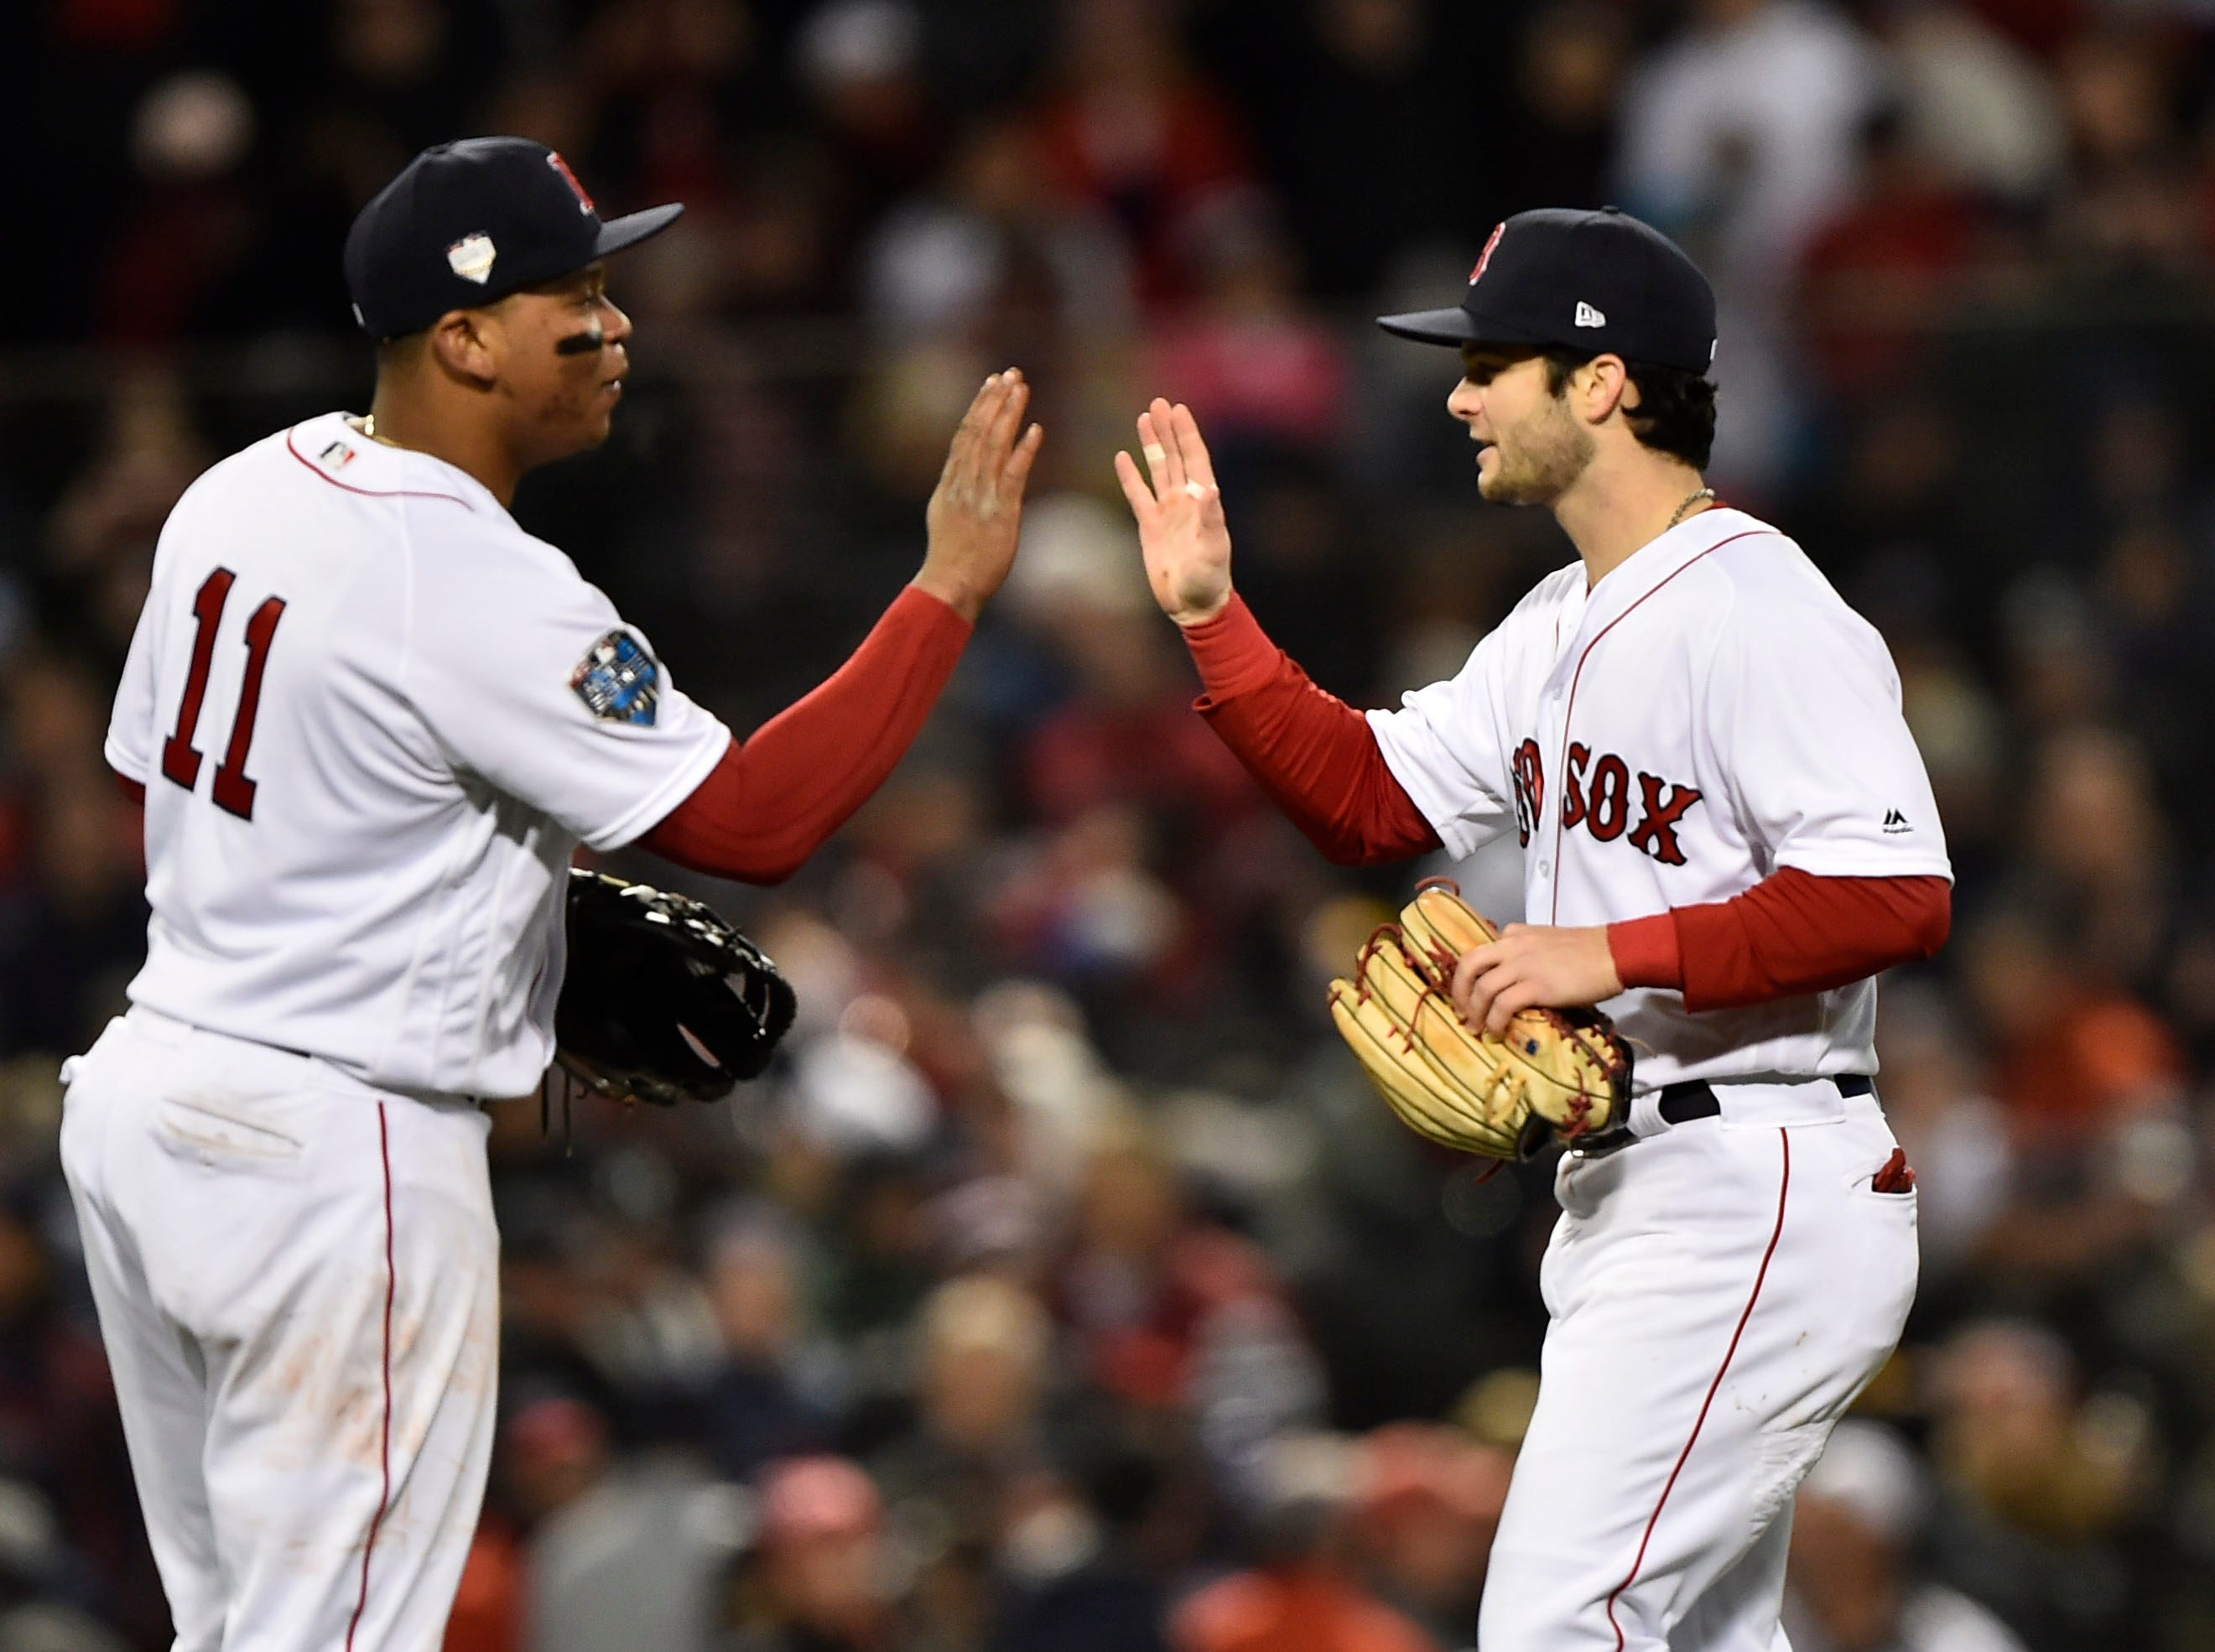 Game 2 at Fenway Park: Rafael Devers and Andrew Benintendi celebrate after the 4-2 win.